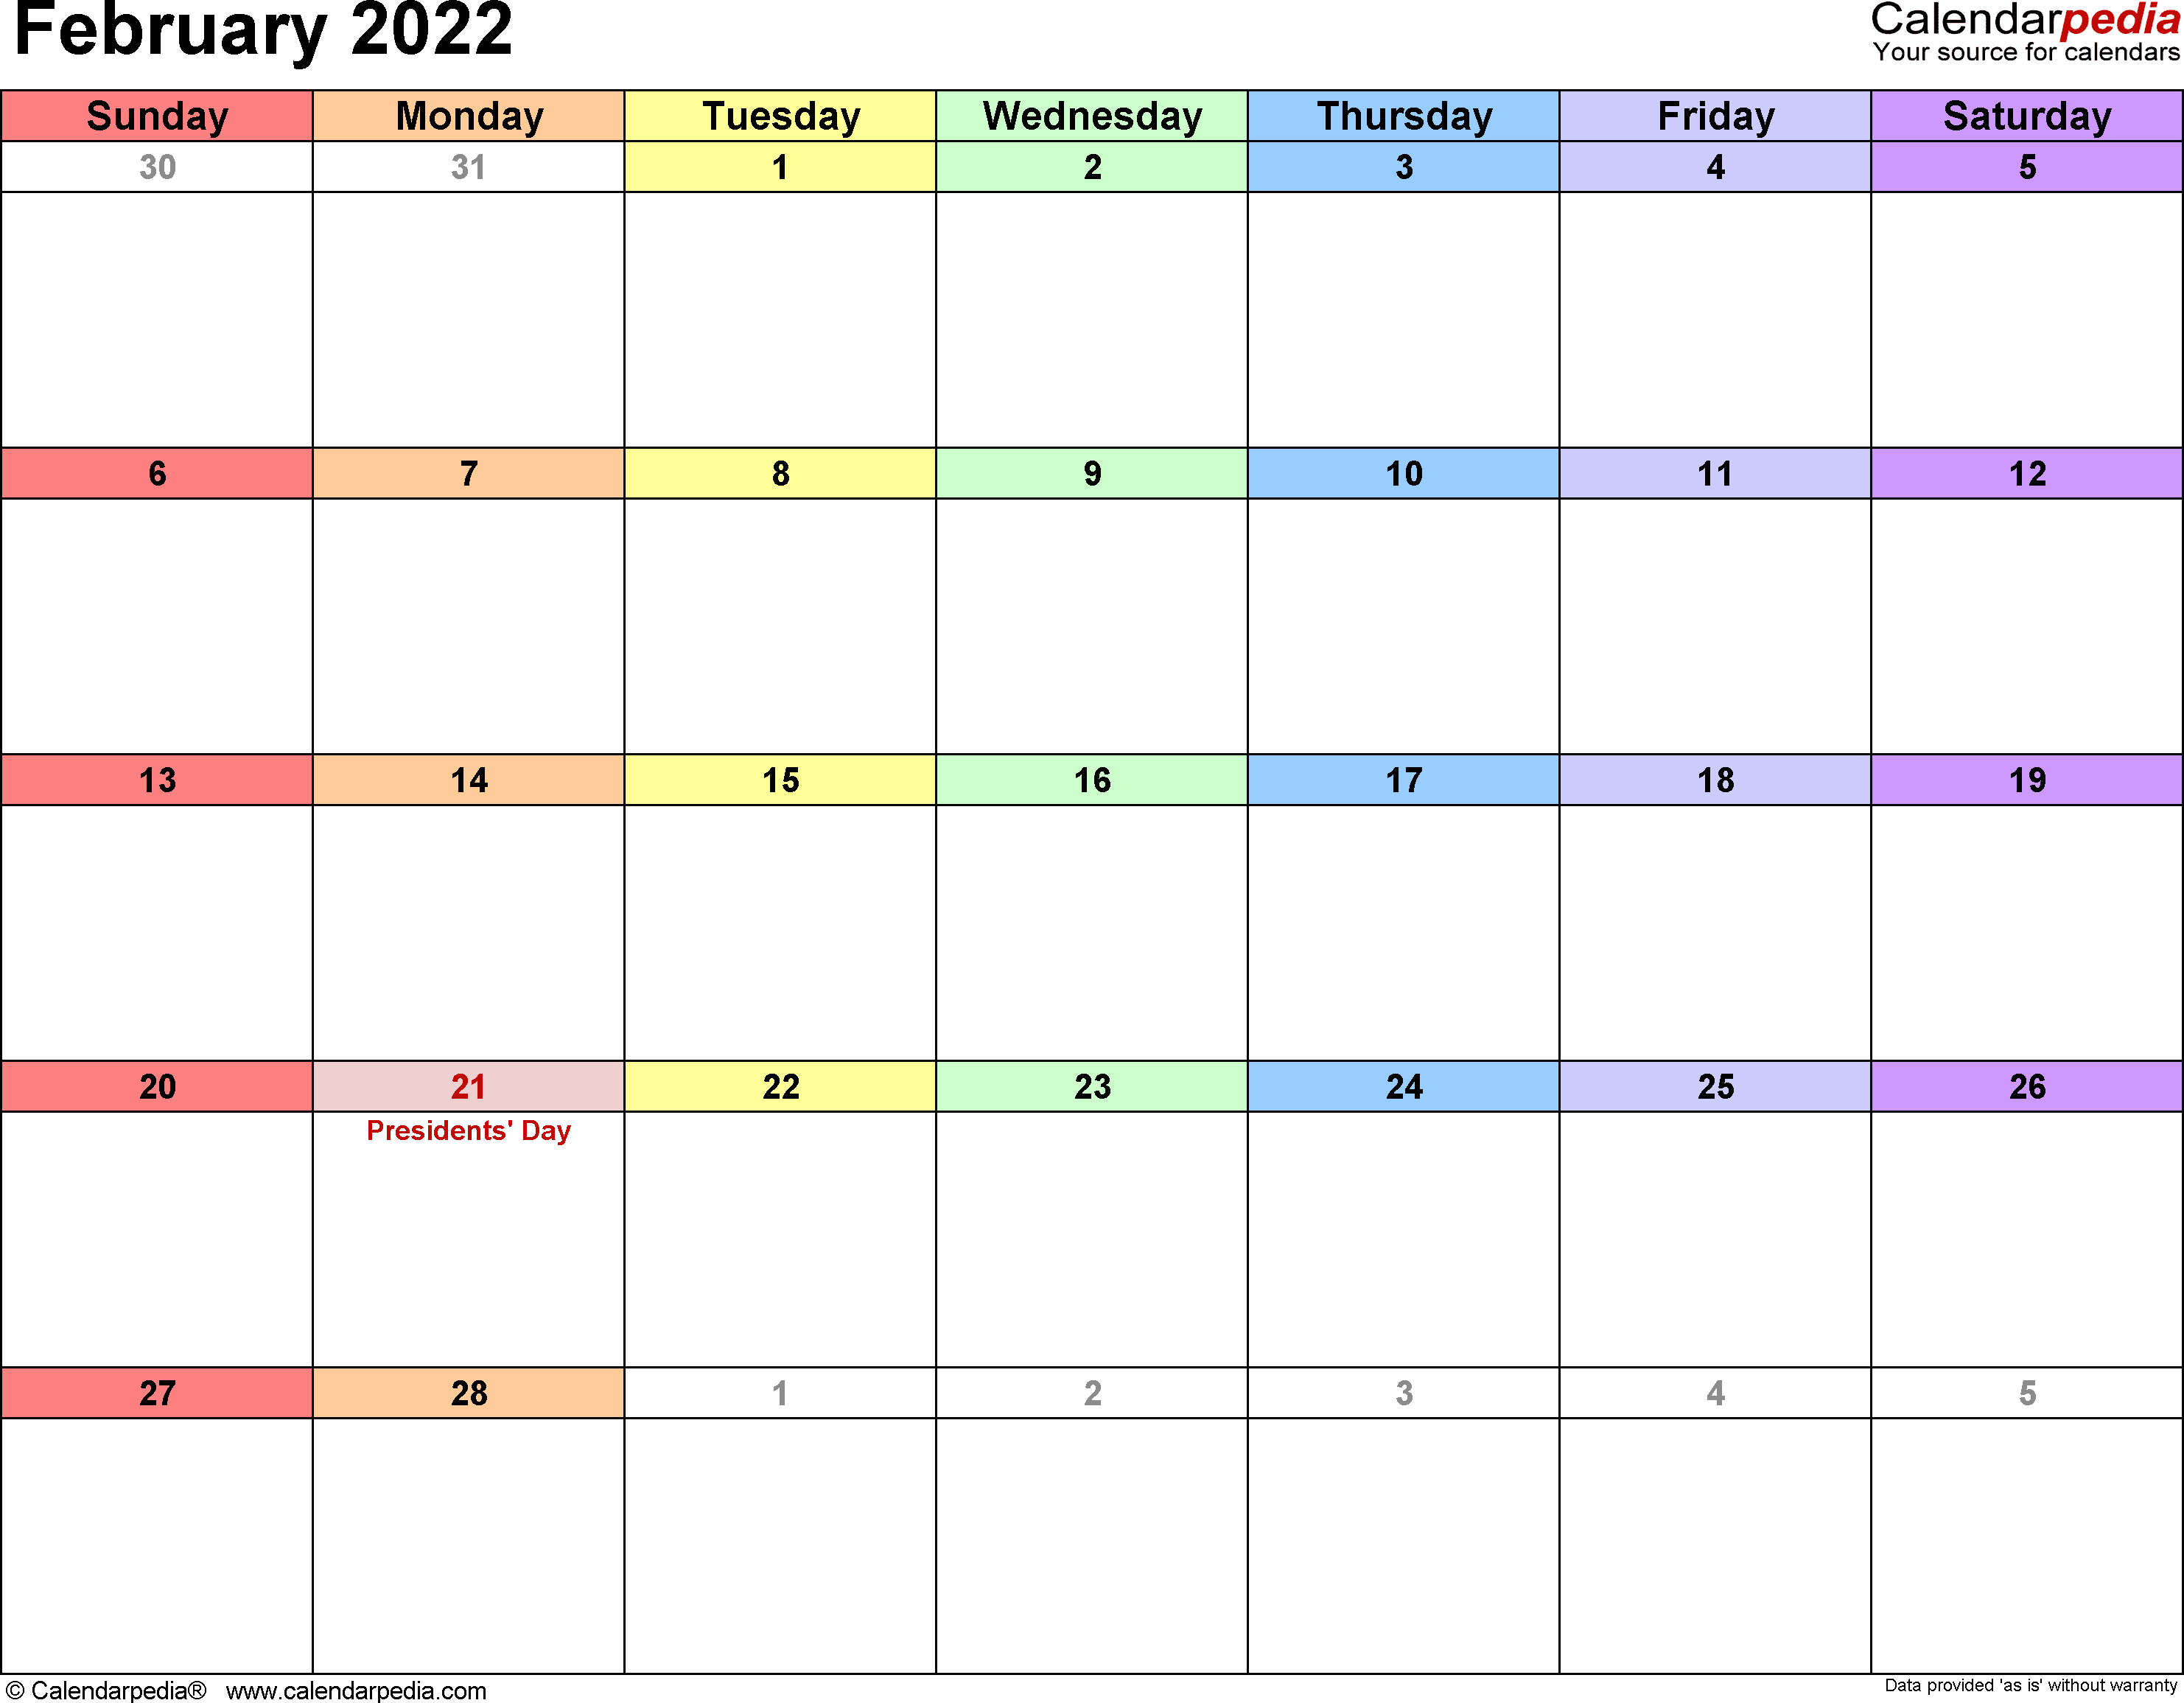 February 2022 Calendars for Word, Excel & PDF